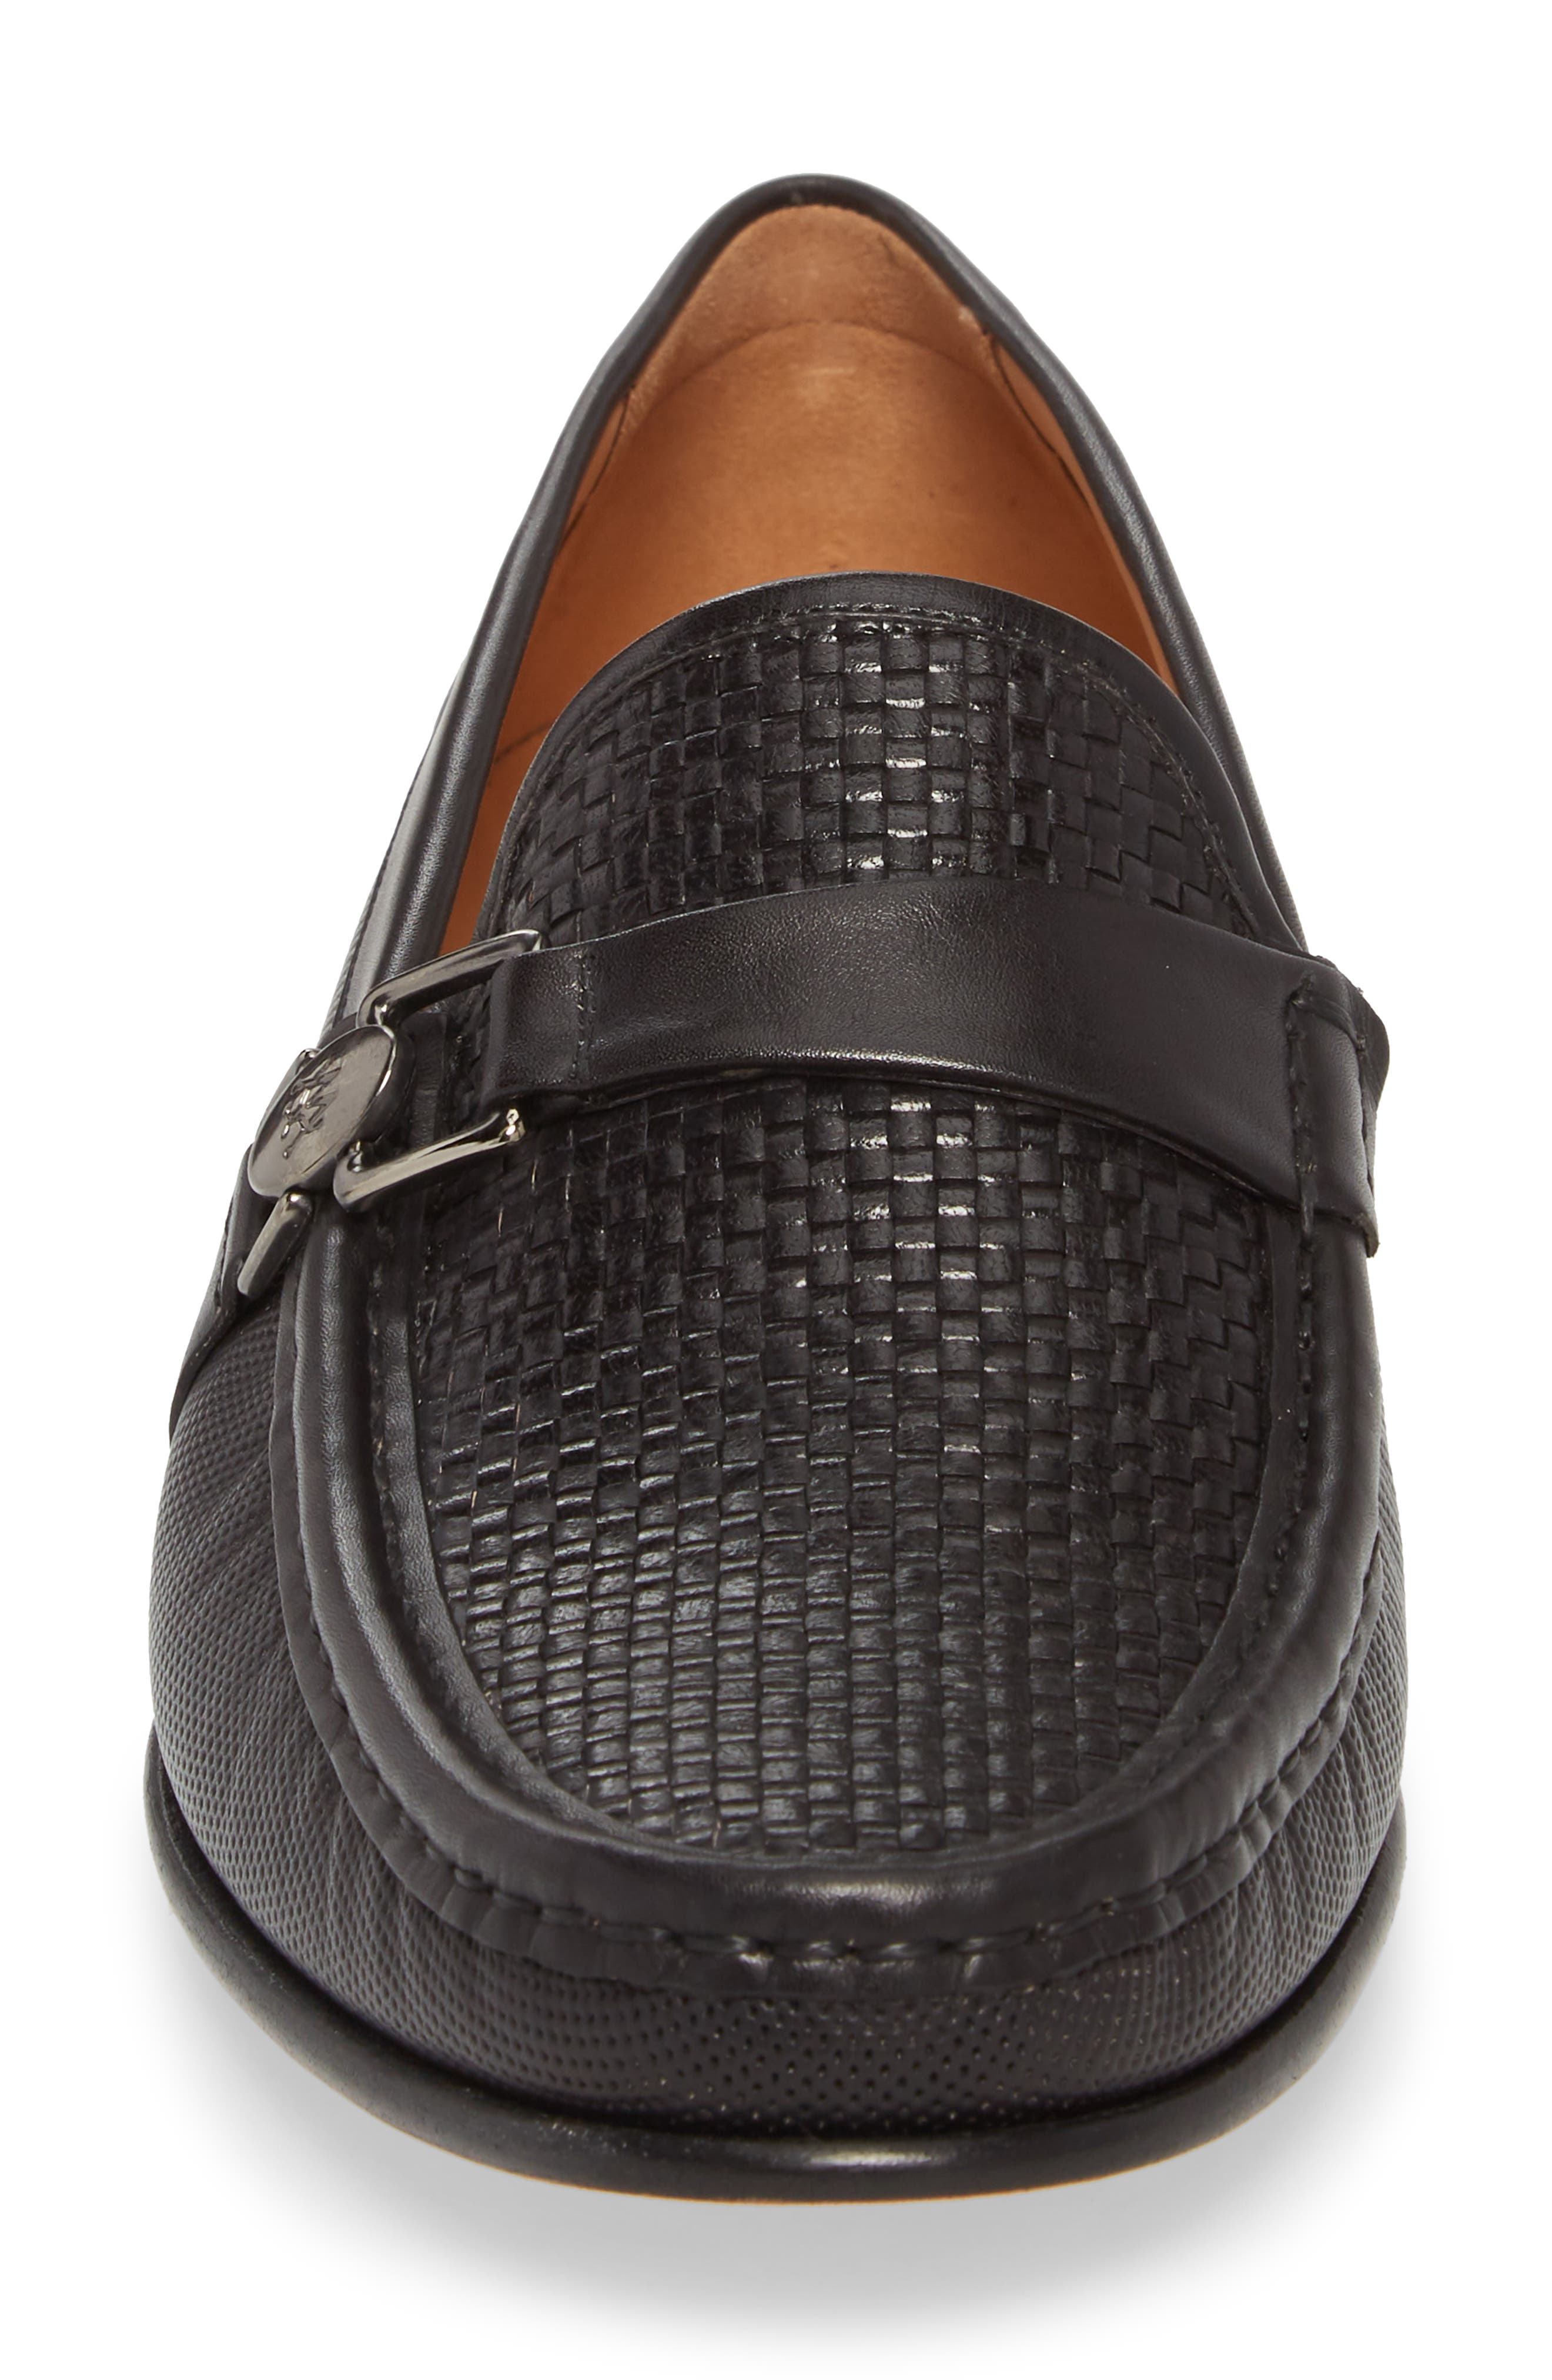 Horatio Woven Moc Toe Loafer,                             Alternate thumbnail 4, color,                             Black Leather